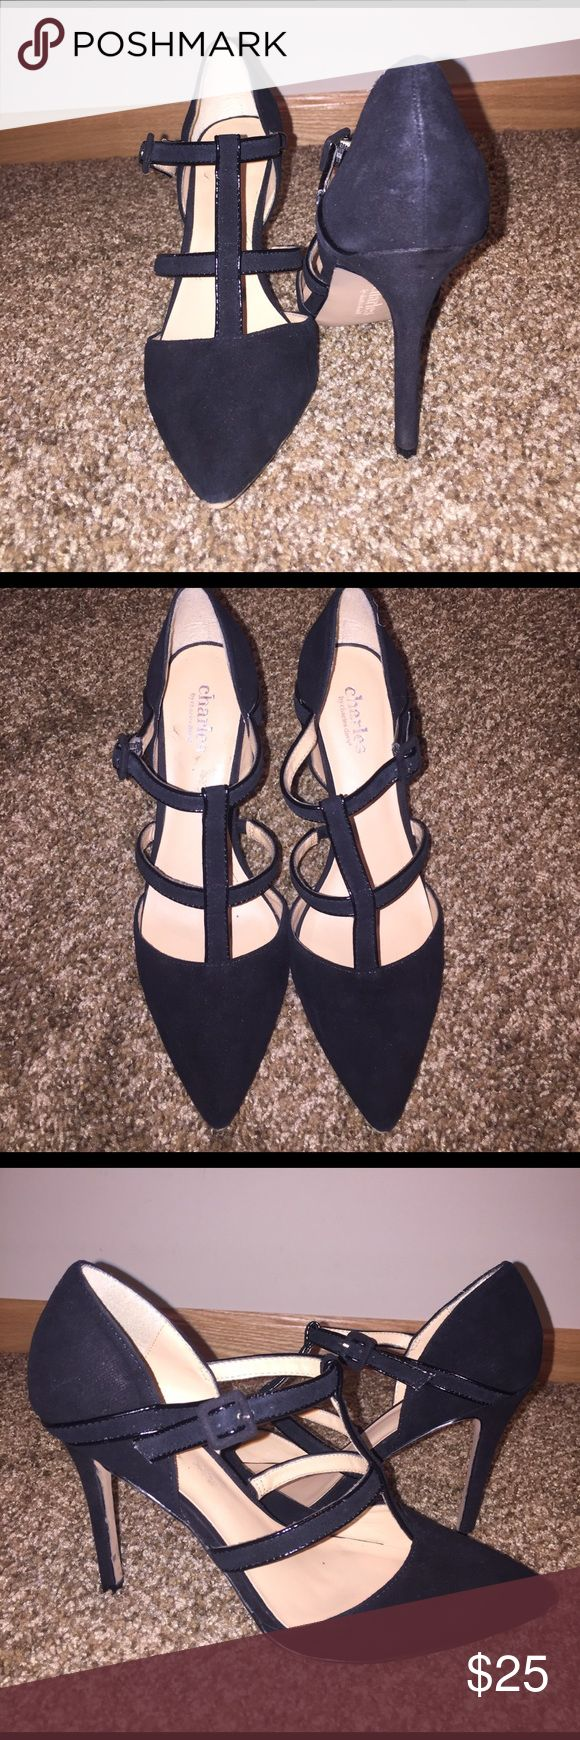 Charles David black suede heels Worn once, no scuffing. Very comfy for this type of heel! Charles David Shoes Heels